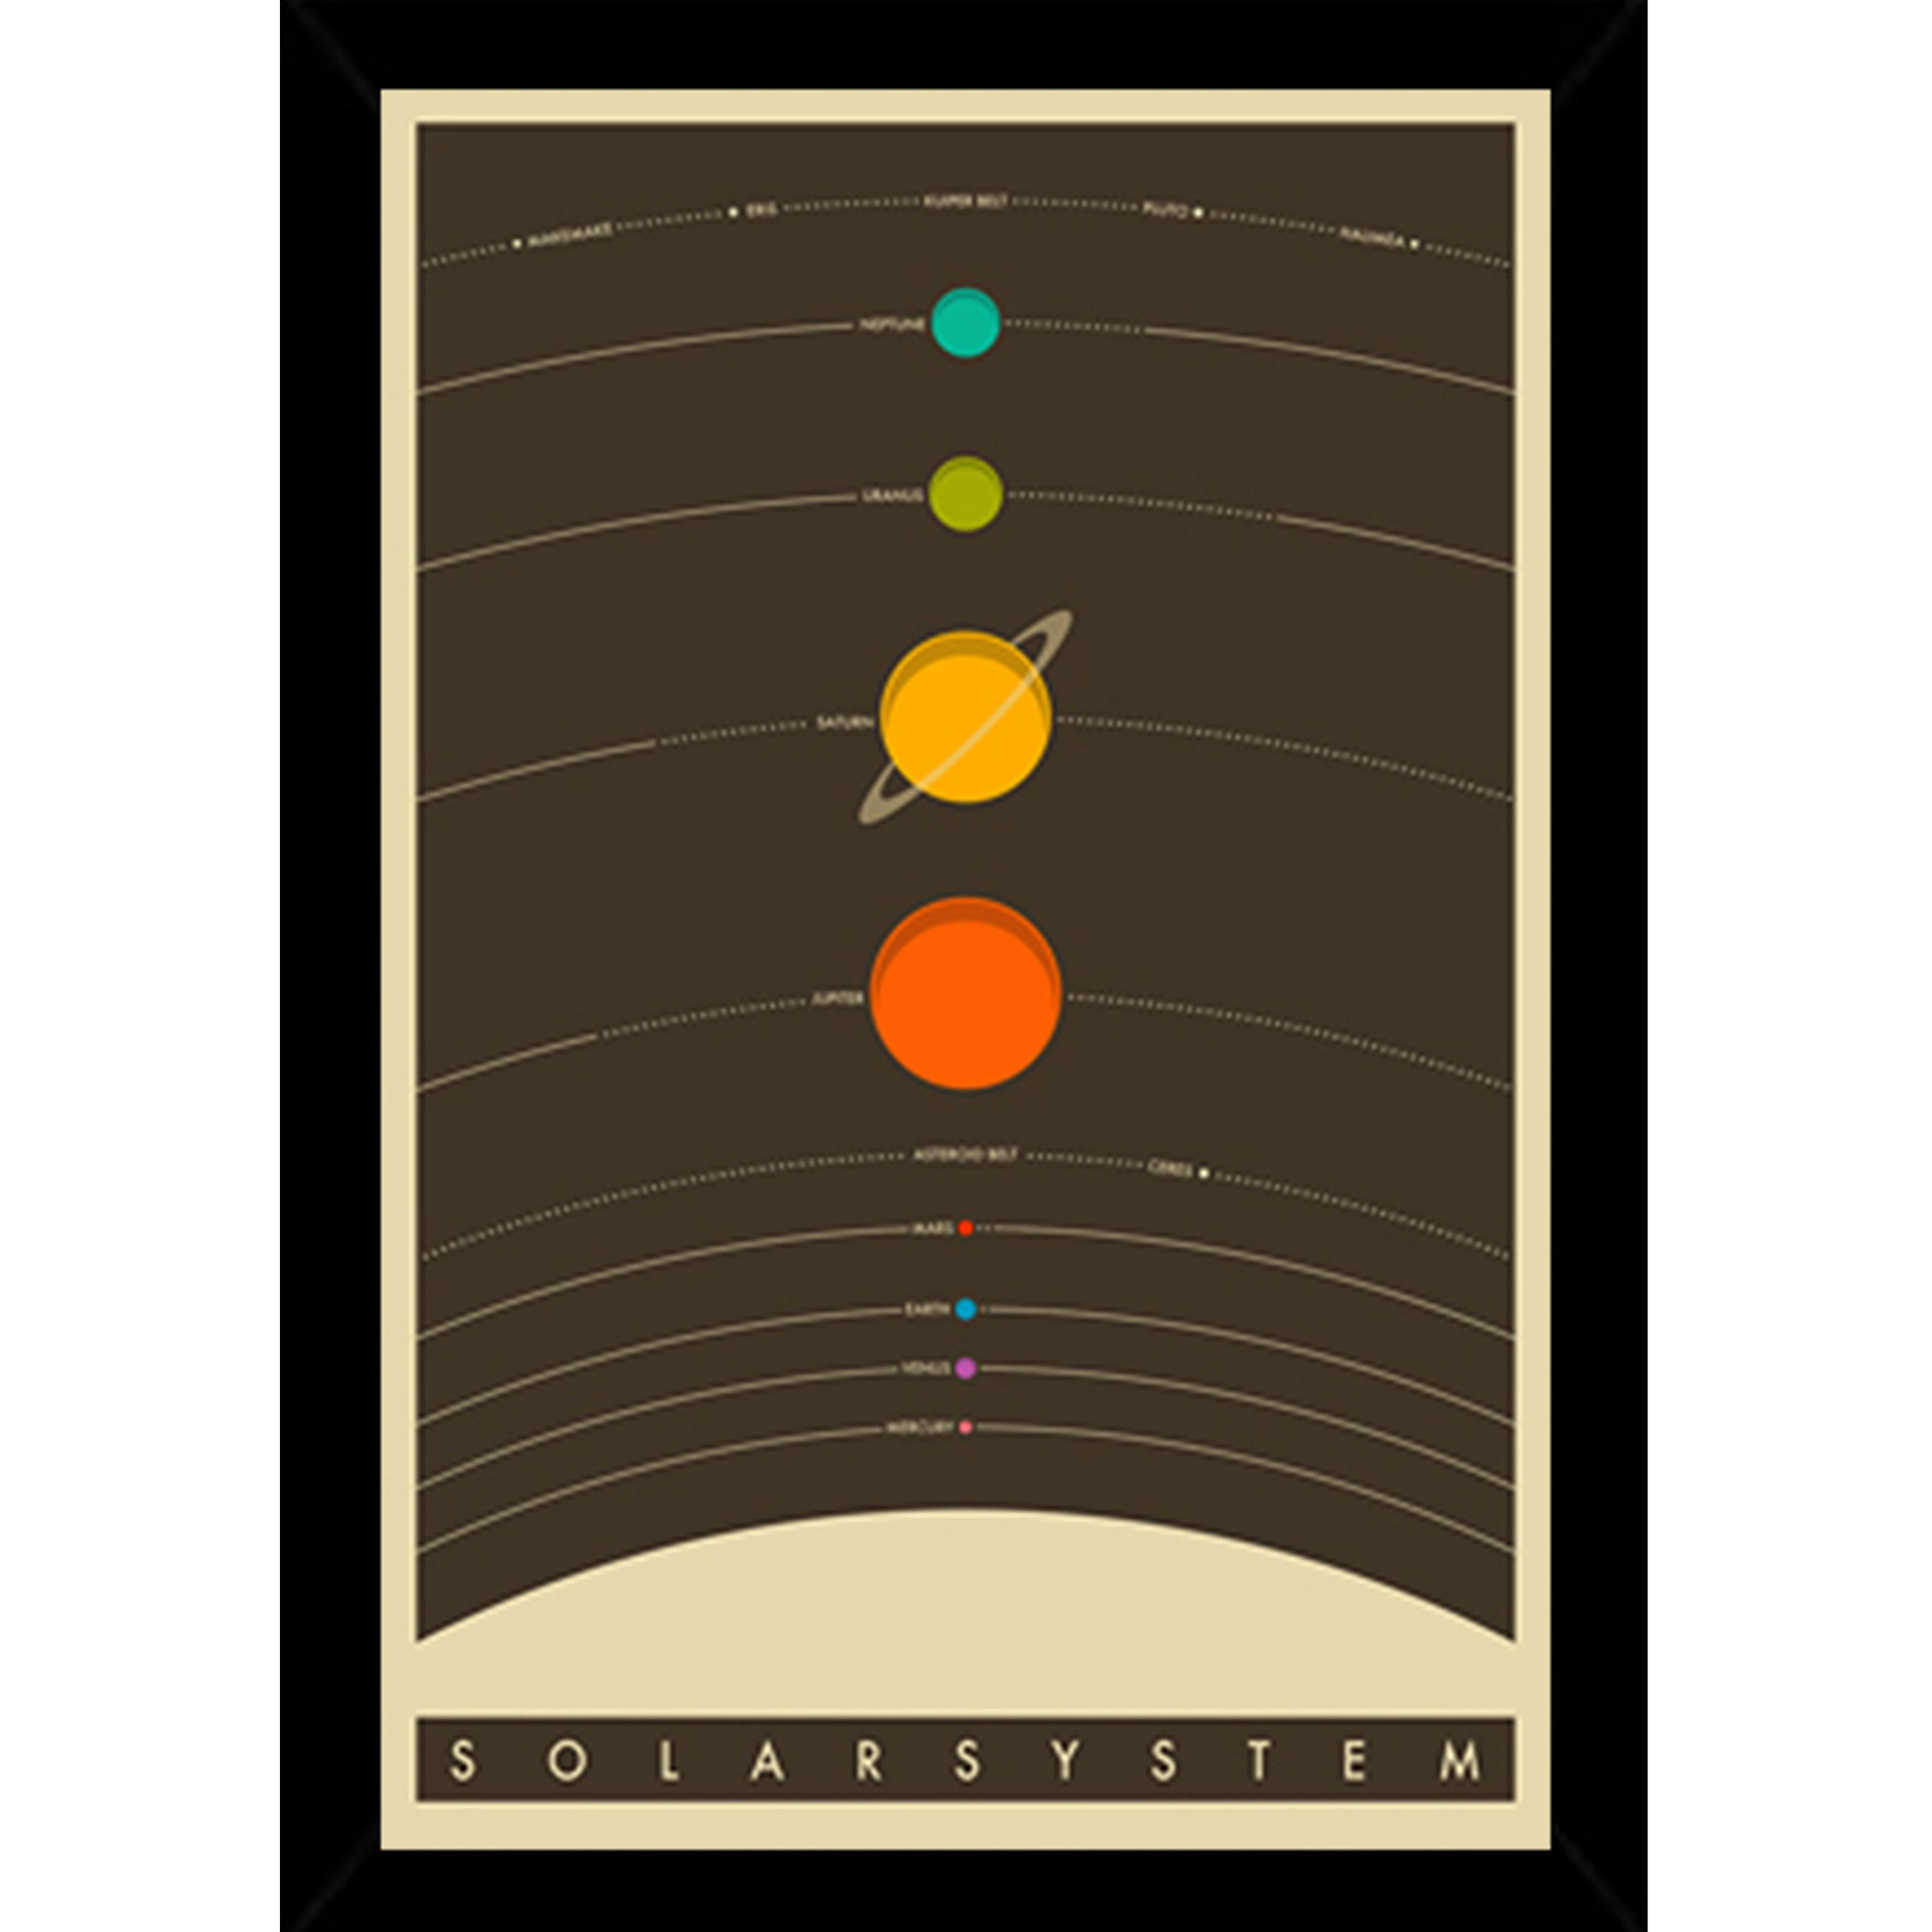 The Solar System Poster (24x36) in a Black Poster Frame 24508-PSA010450